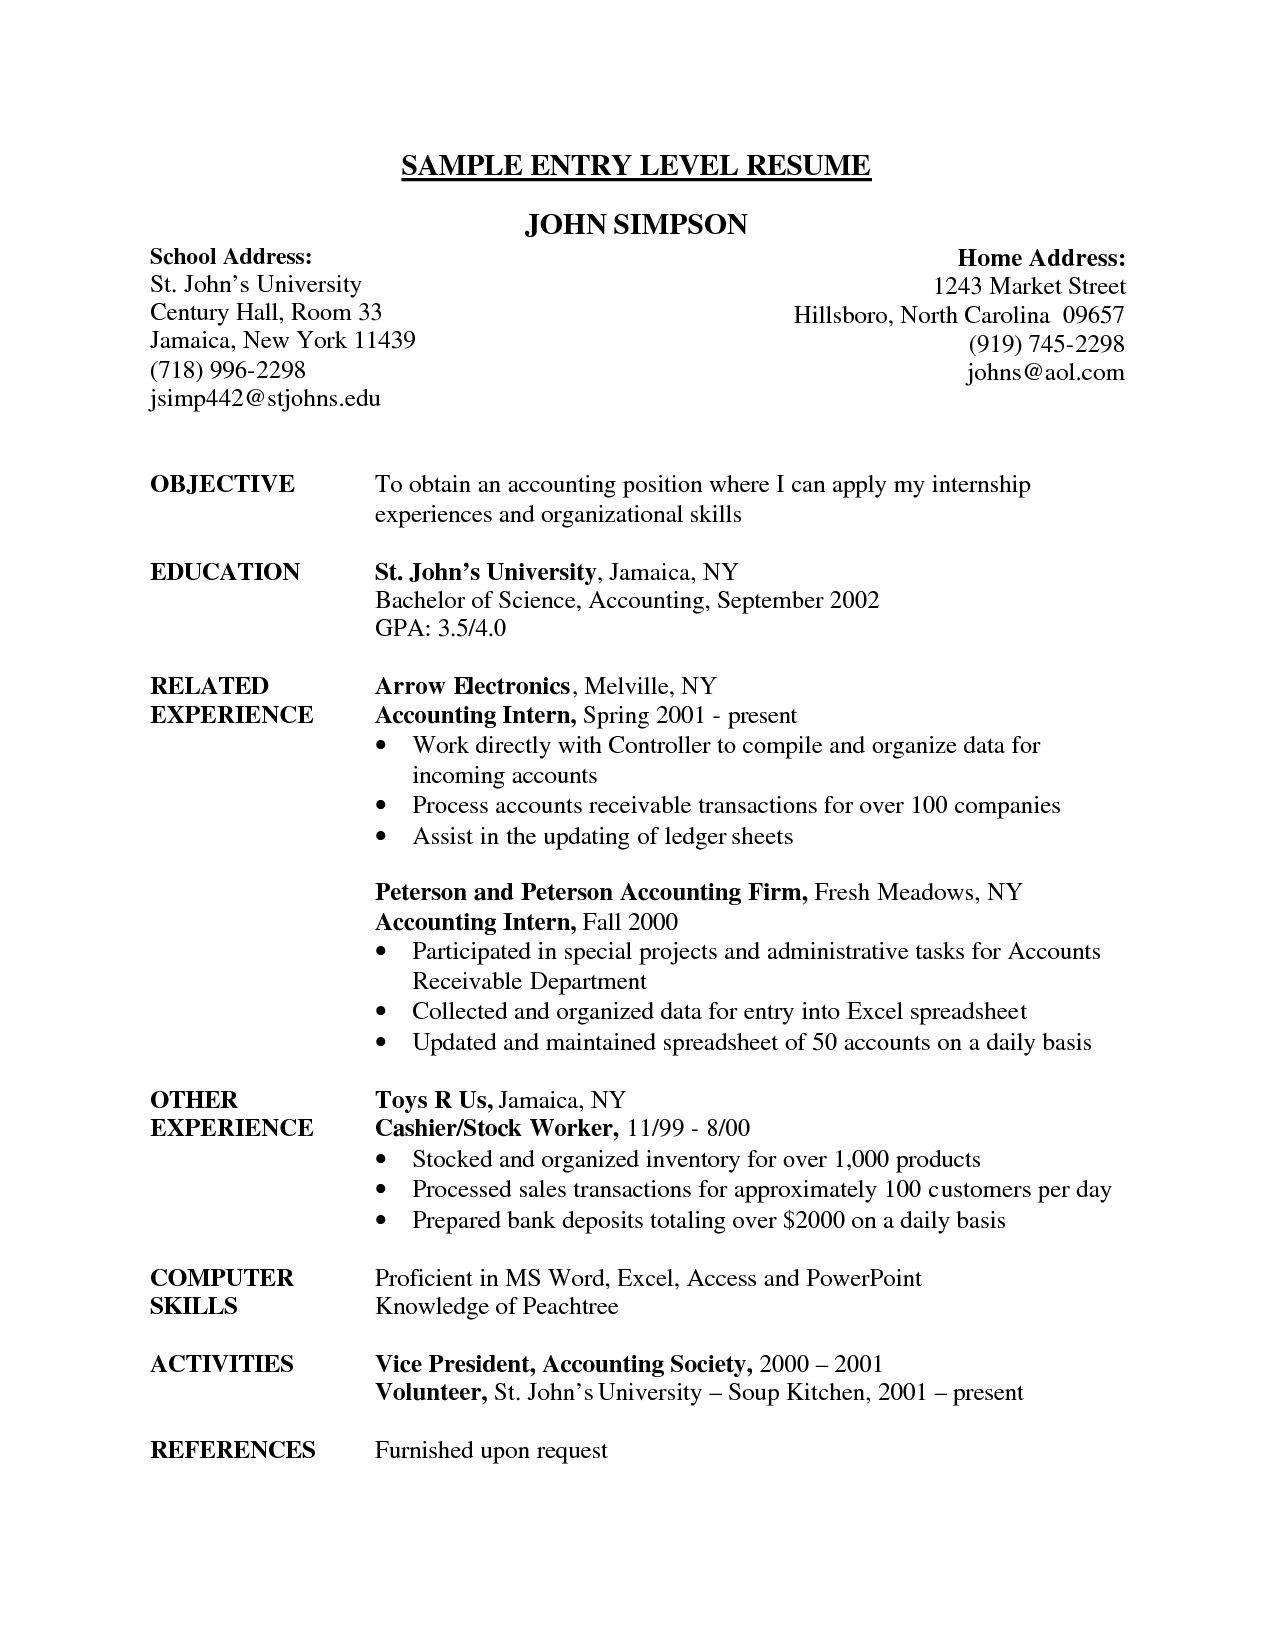 Accounts Receivable Resume Entry Level Resume Example Entry Level Job Resume Examples